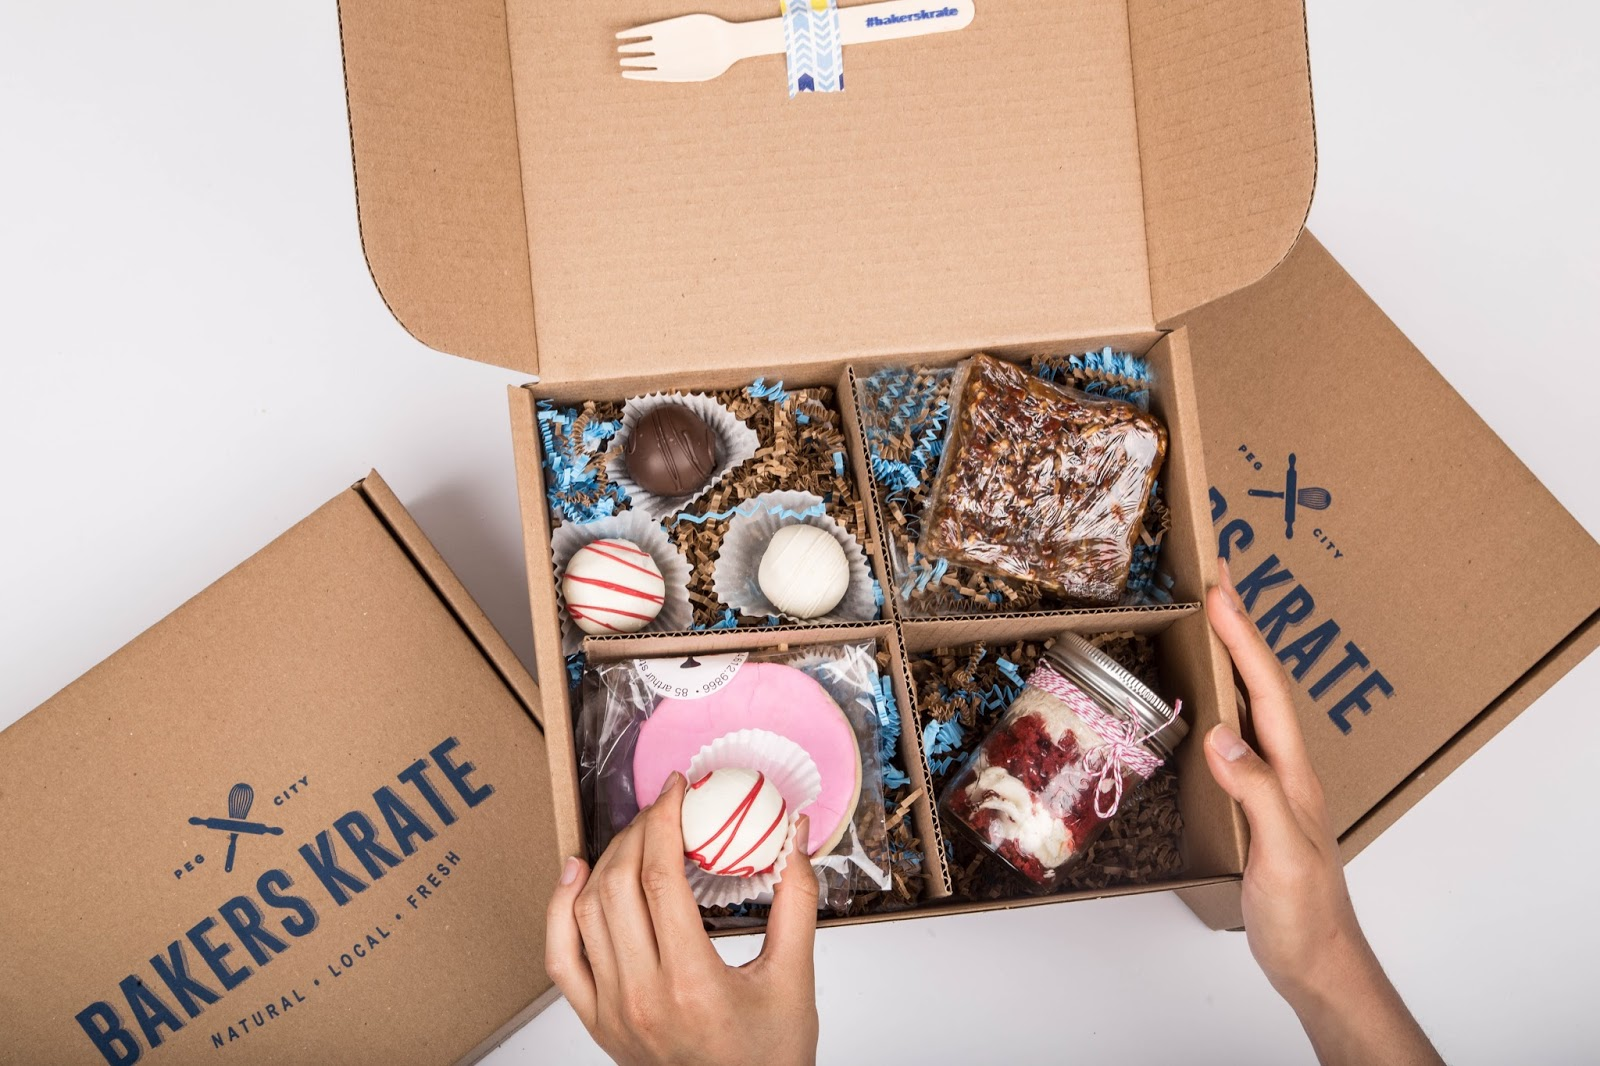 New Canadian Subscription Box Find - Bakers Krate